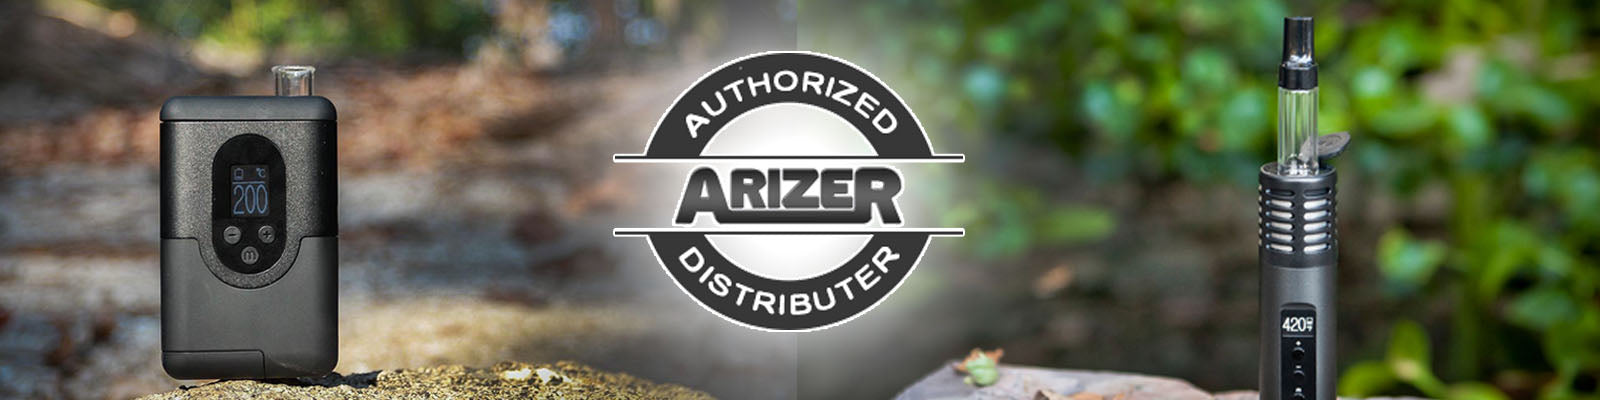 Arizer Vaporizers USA Free Shipping Best Price